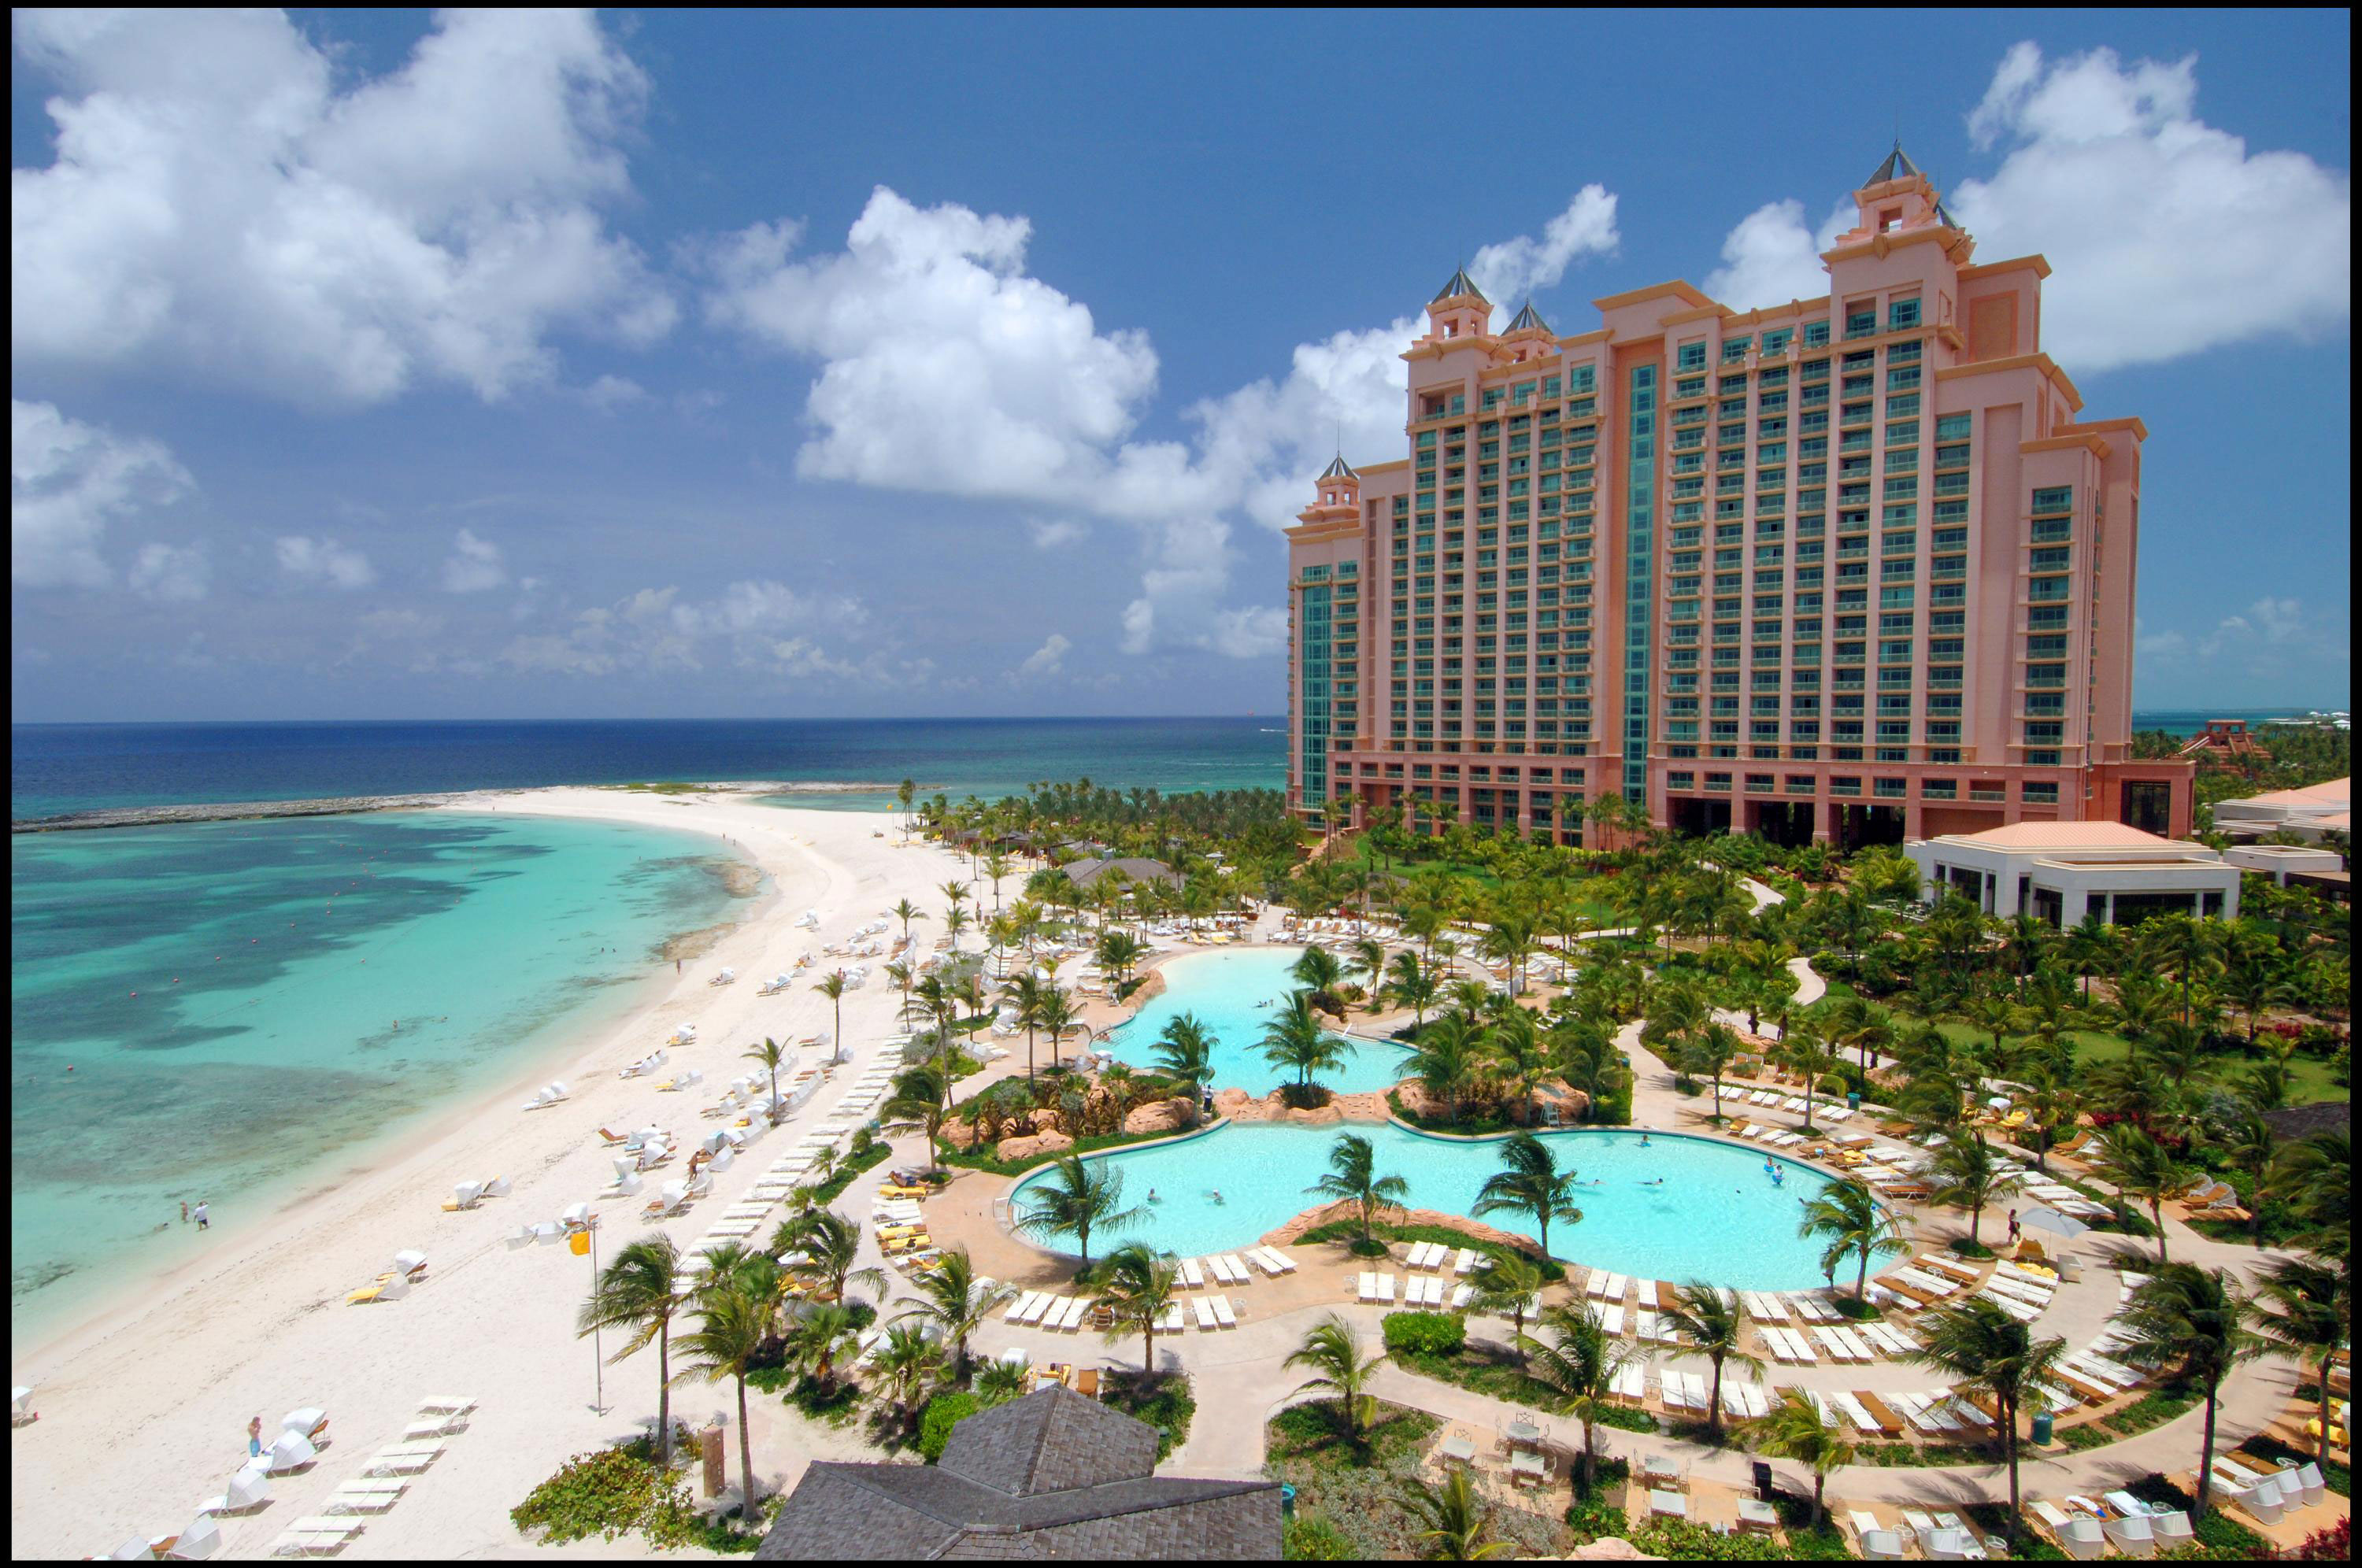 The Cove Atlantis  Bahamas Honeymoons  Honeymoon Dreams